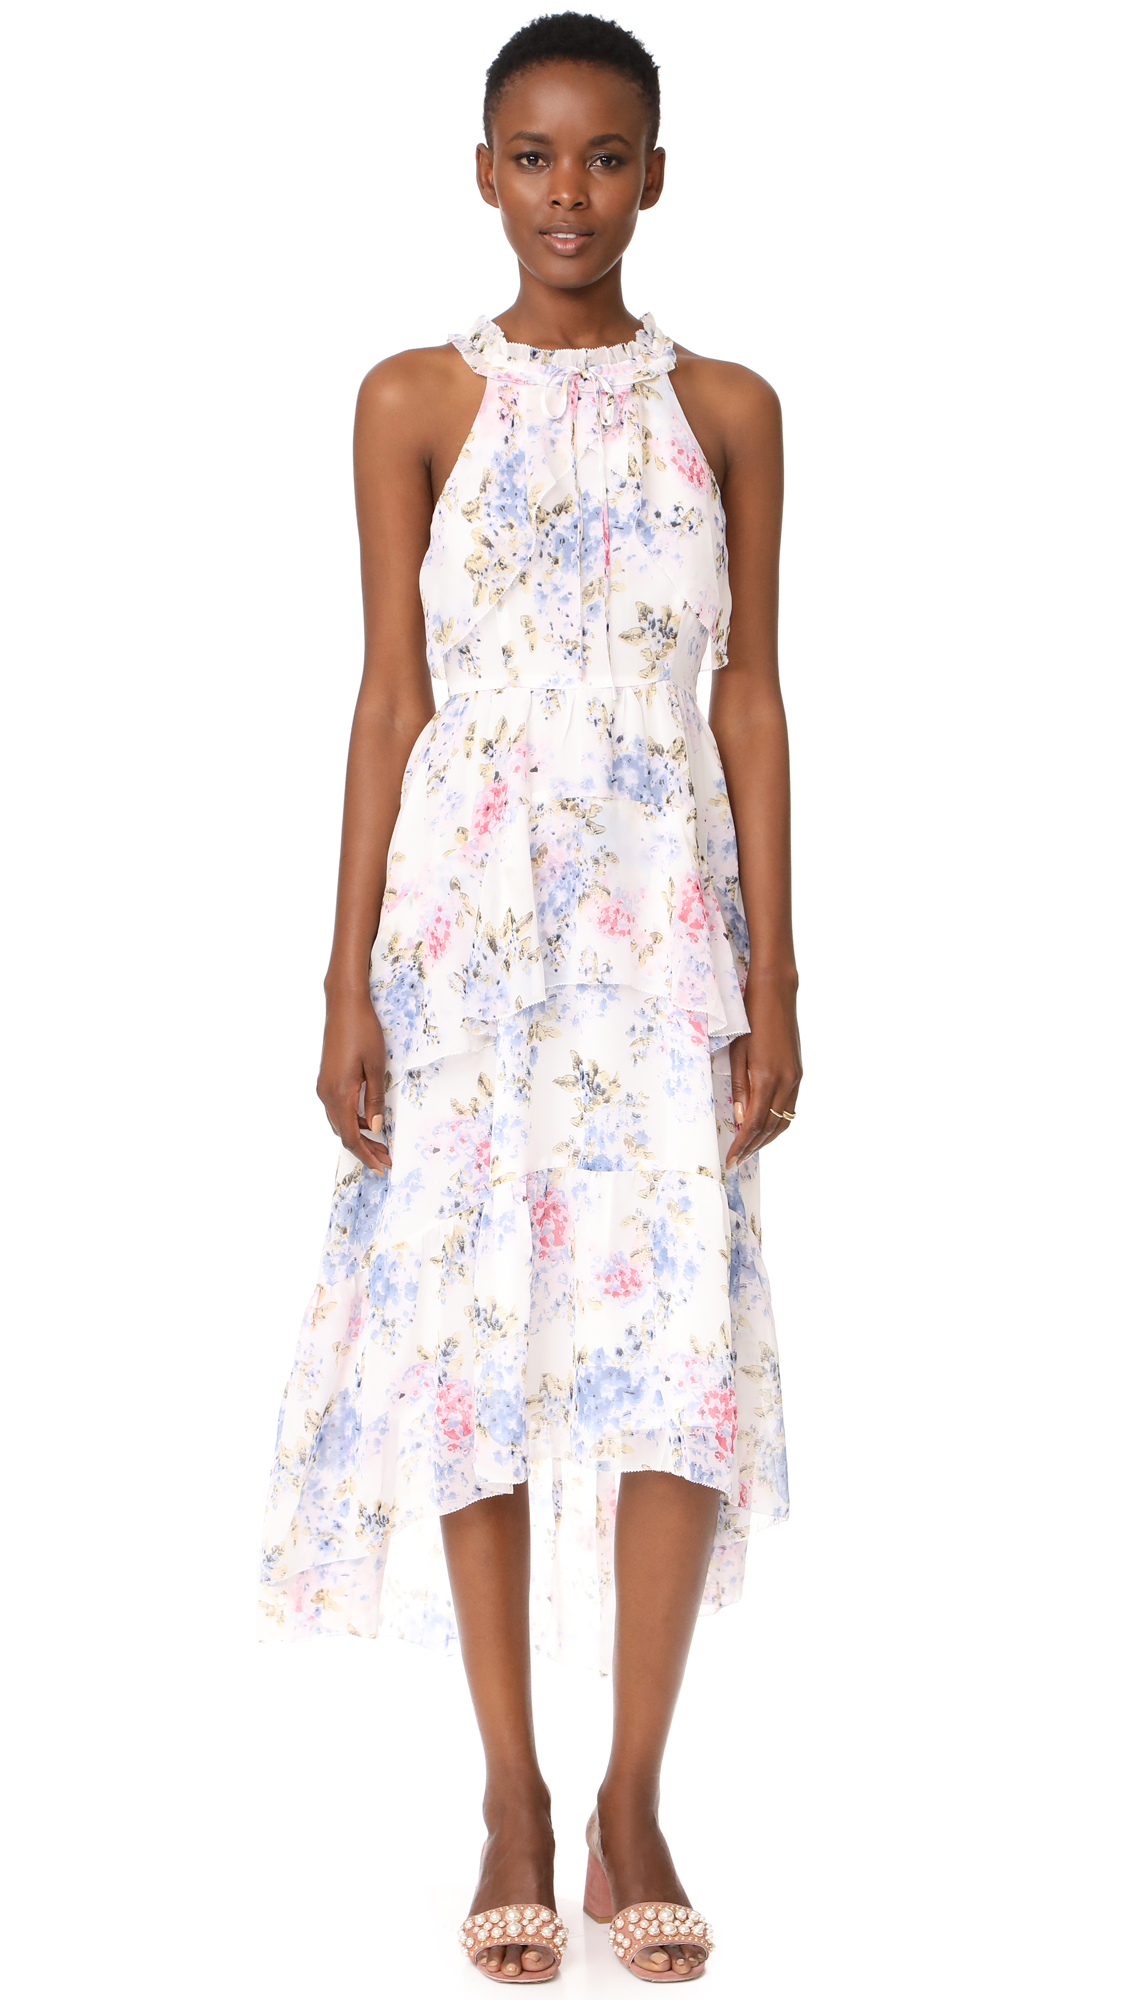 After Market Floral Maxi Dress - Pink Floral